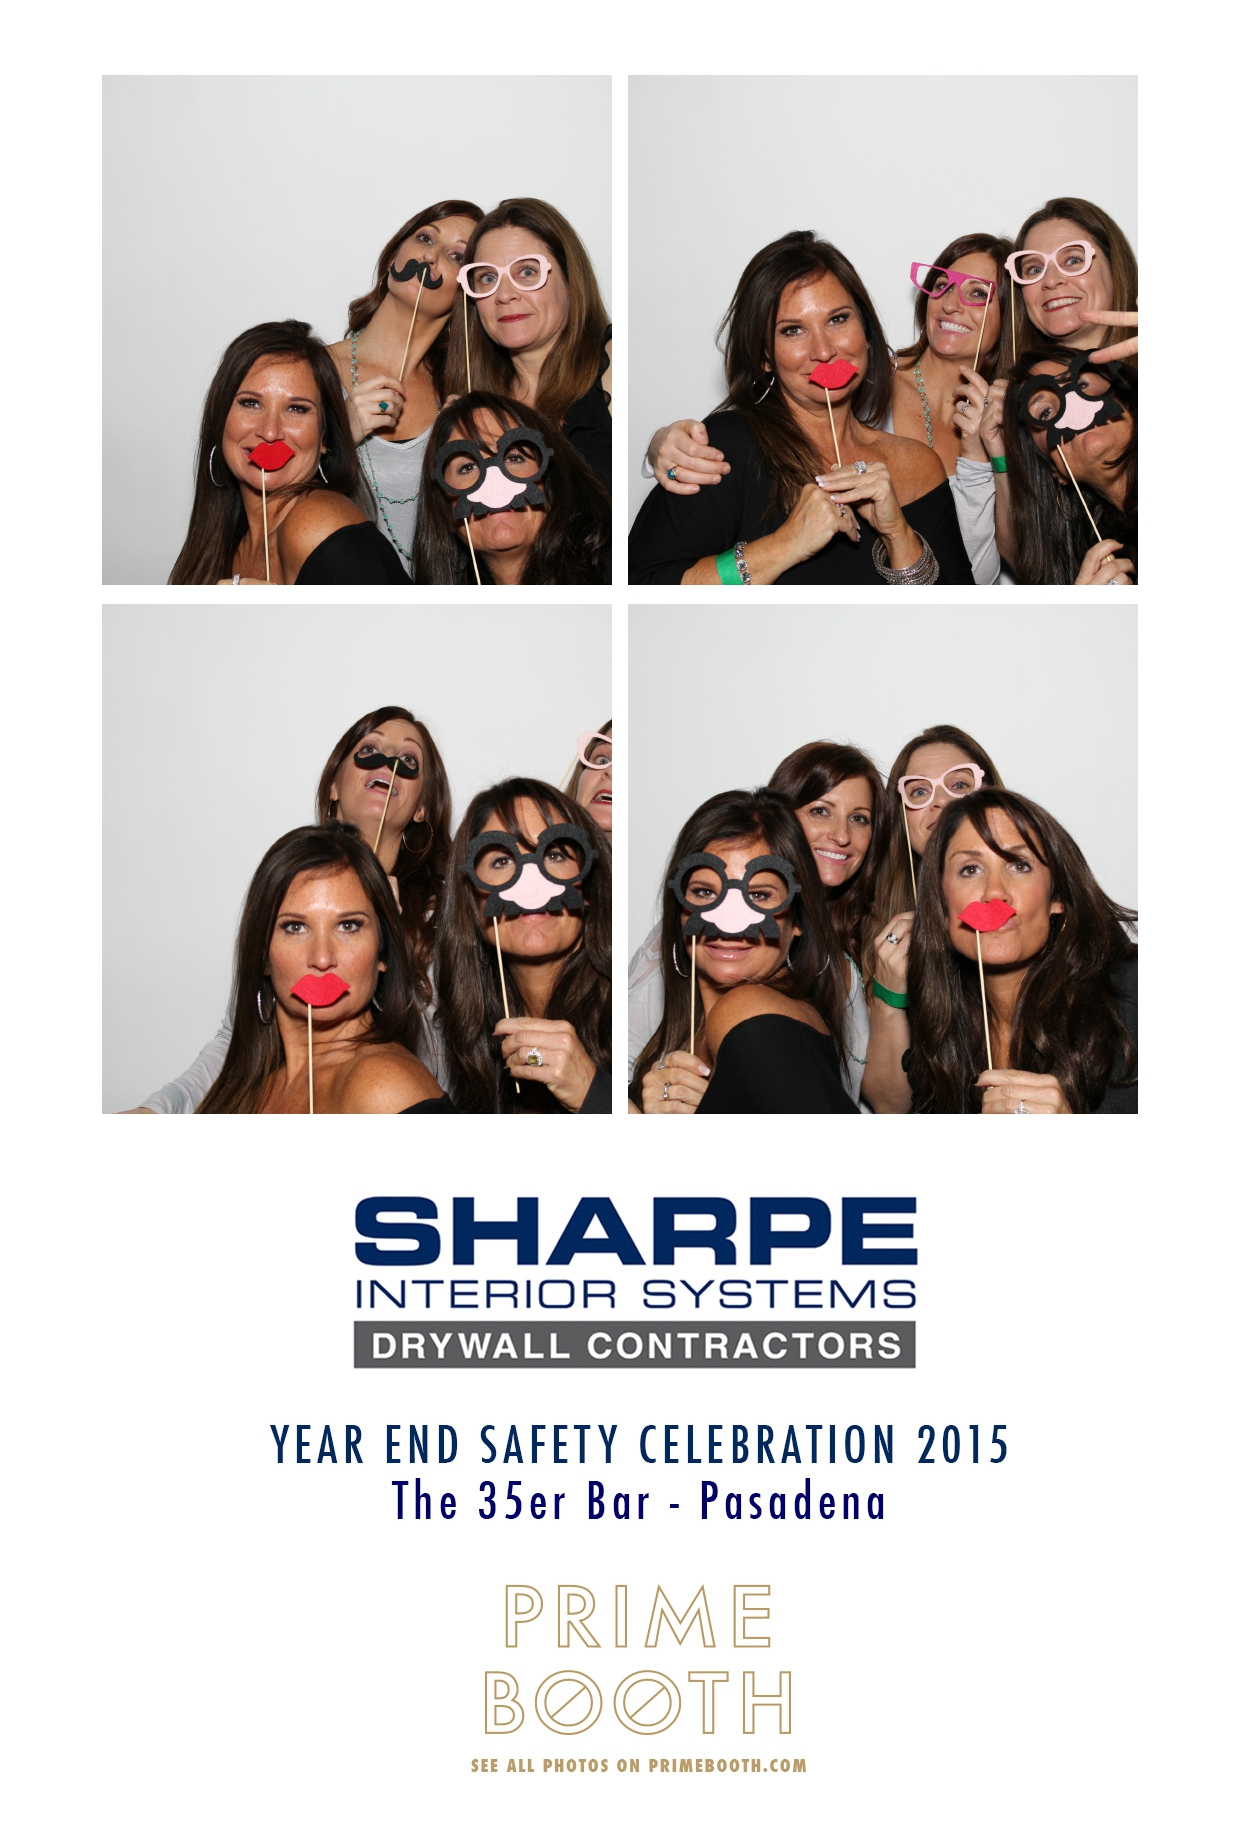 Sharpe Event at 35er Bar, Pasadena - Los Angeles Photo Booth Rentals - Prime Booth